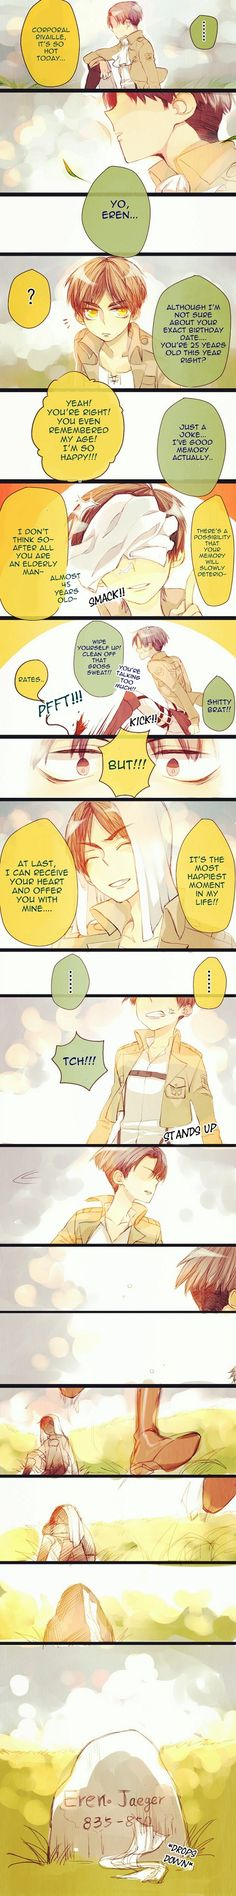 """ "" Original: 改了…… by 不想死君 Translation: orangemouse / Shin [[MORE]]  THIS HURT ME SO MUCH AHHH WHYYYYYY"